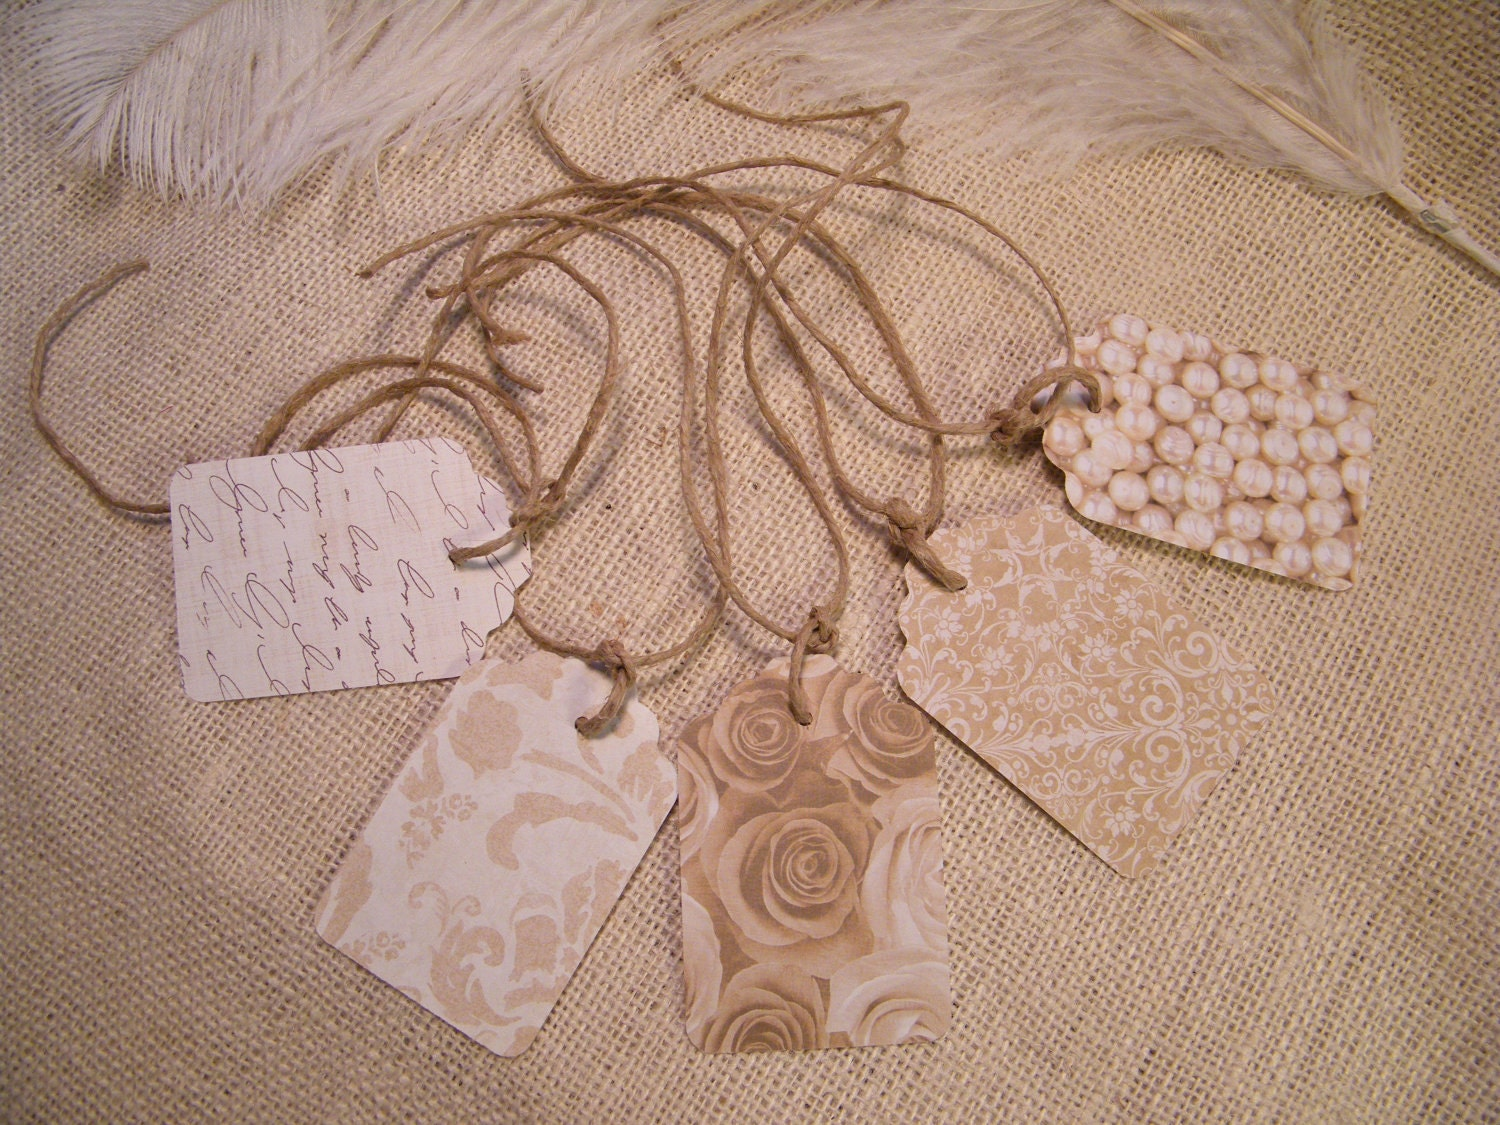 15Vintage Wedding Gift Tags With UNATTACHED twineIvory and White ...